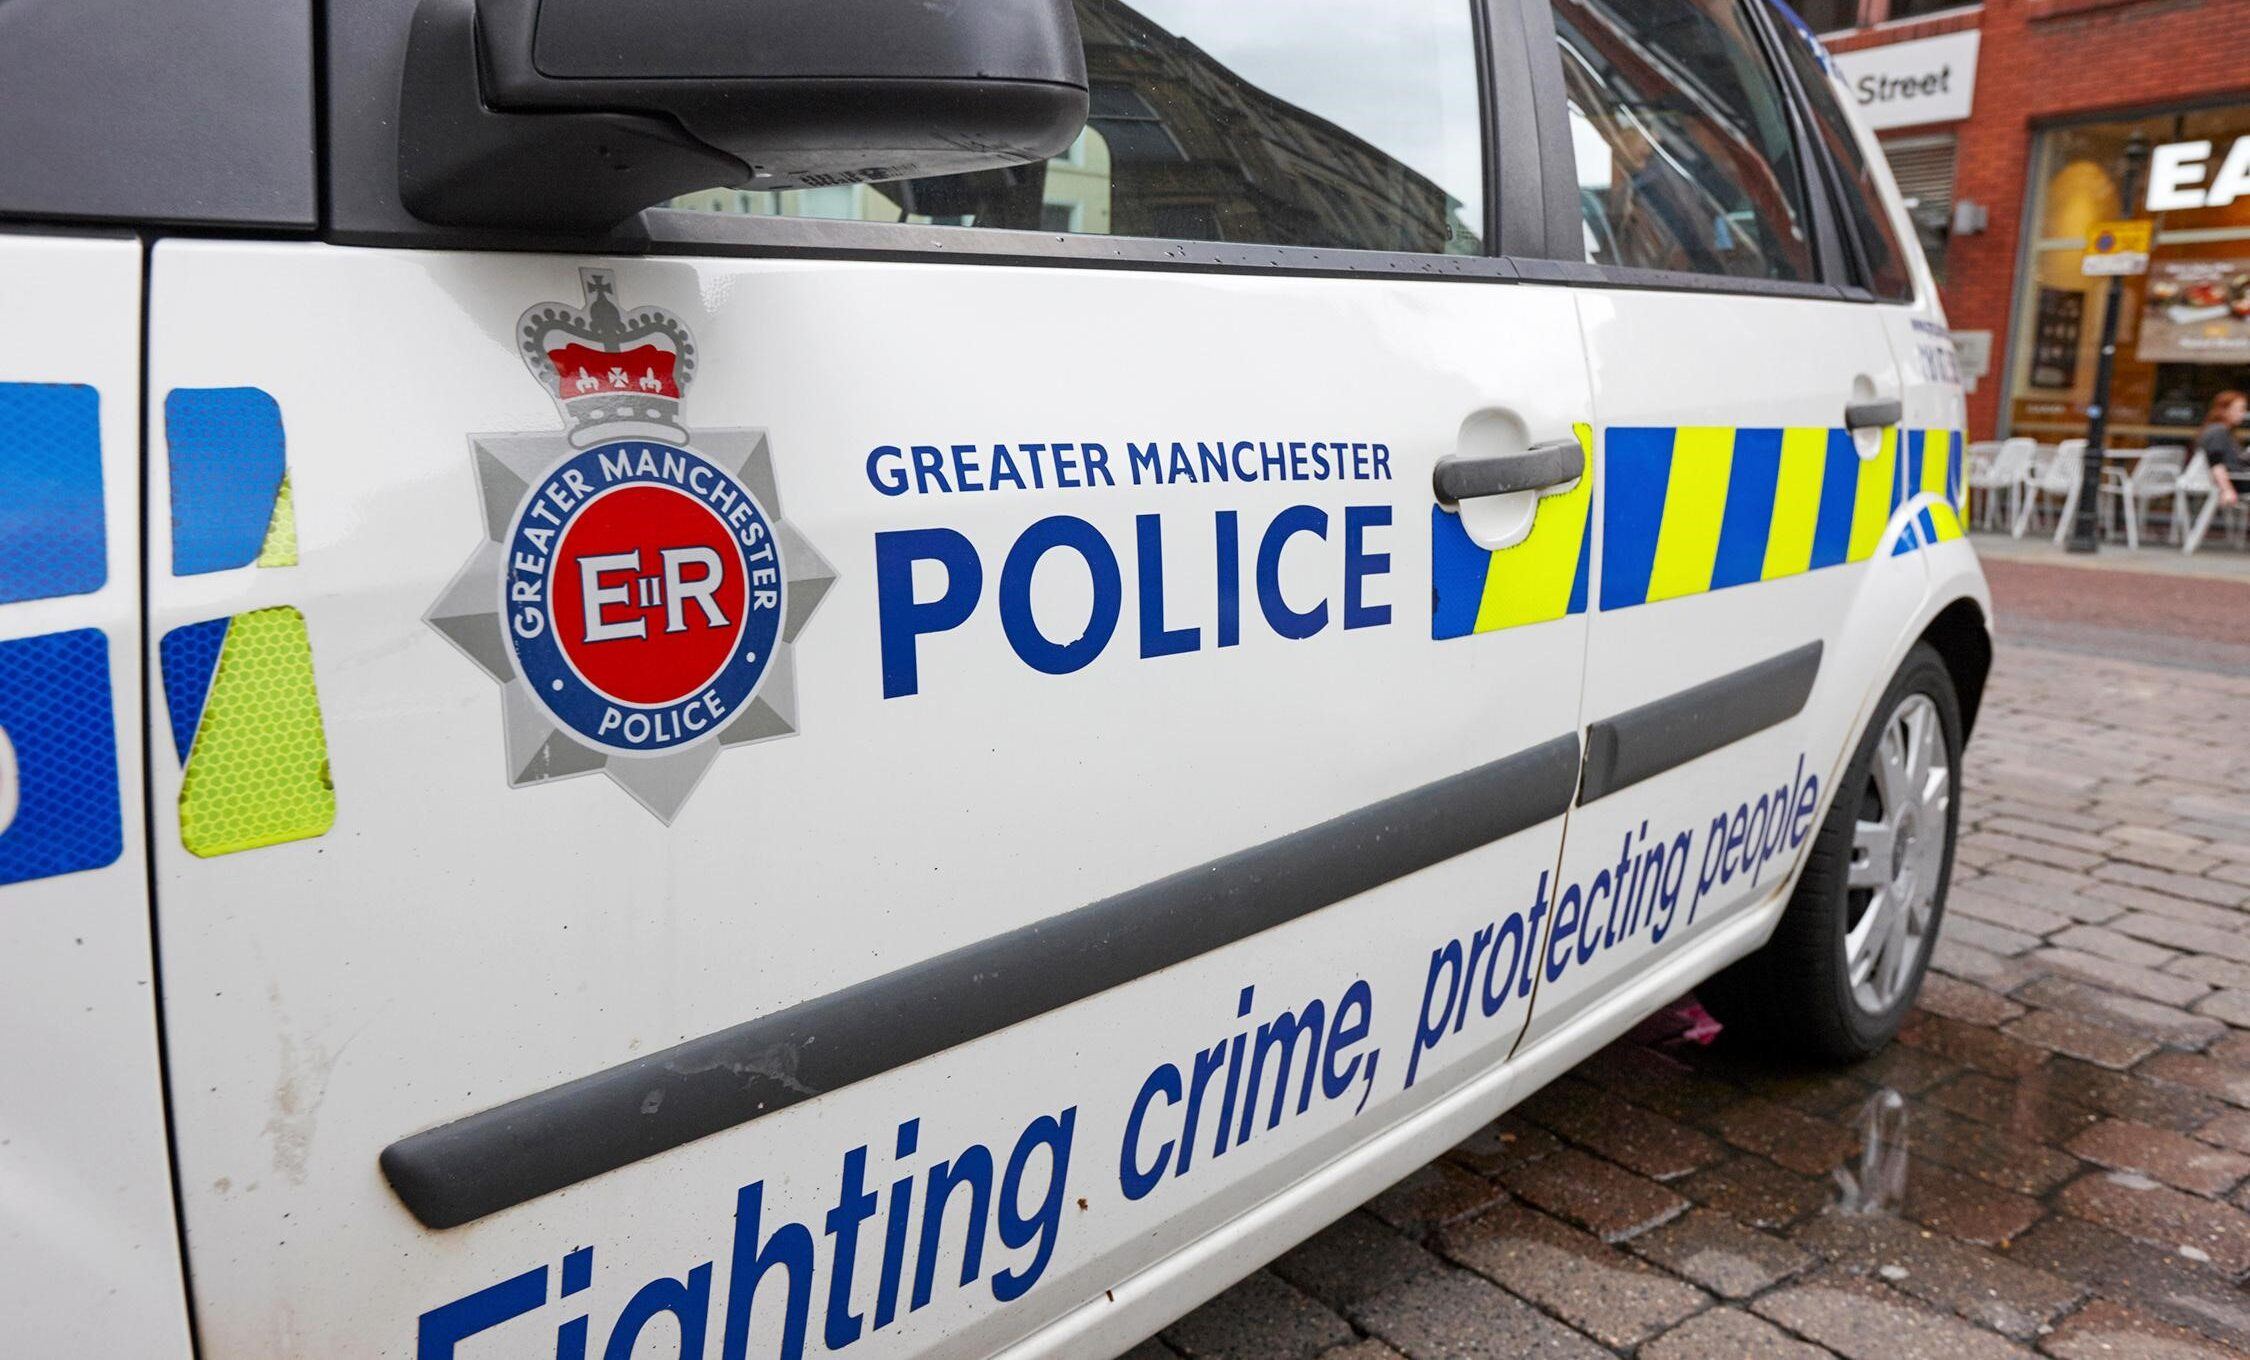 greater Manchester police claim